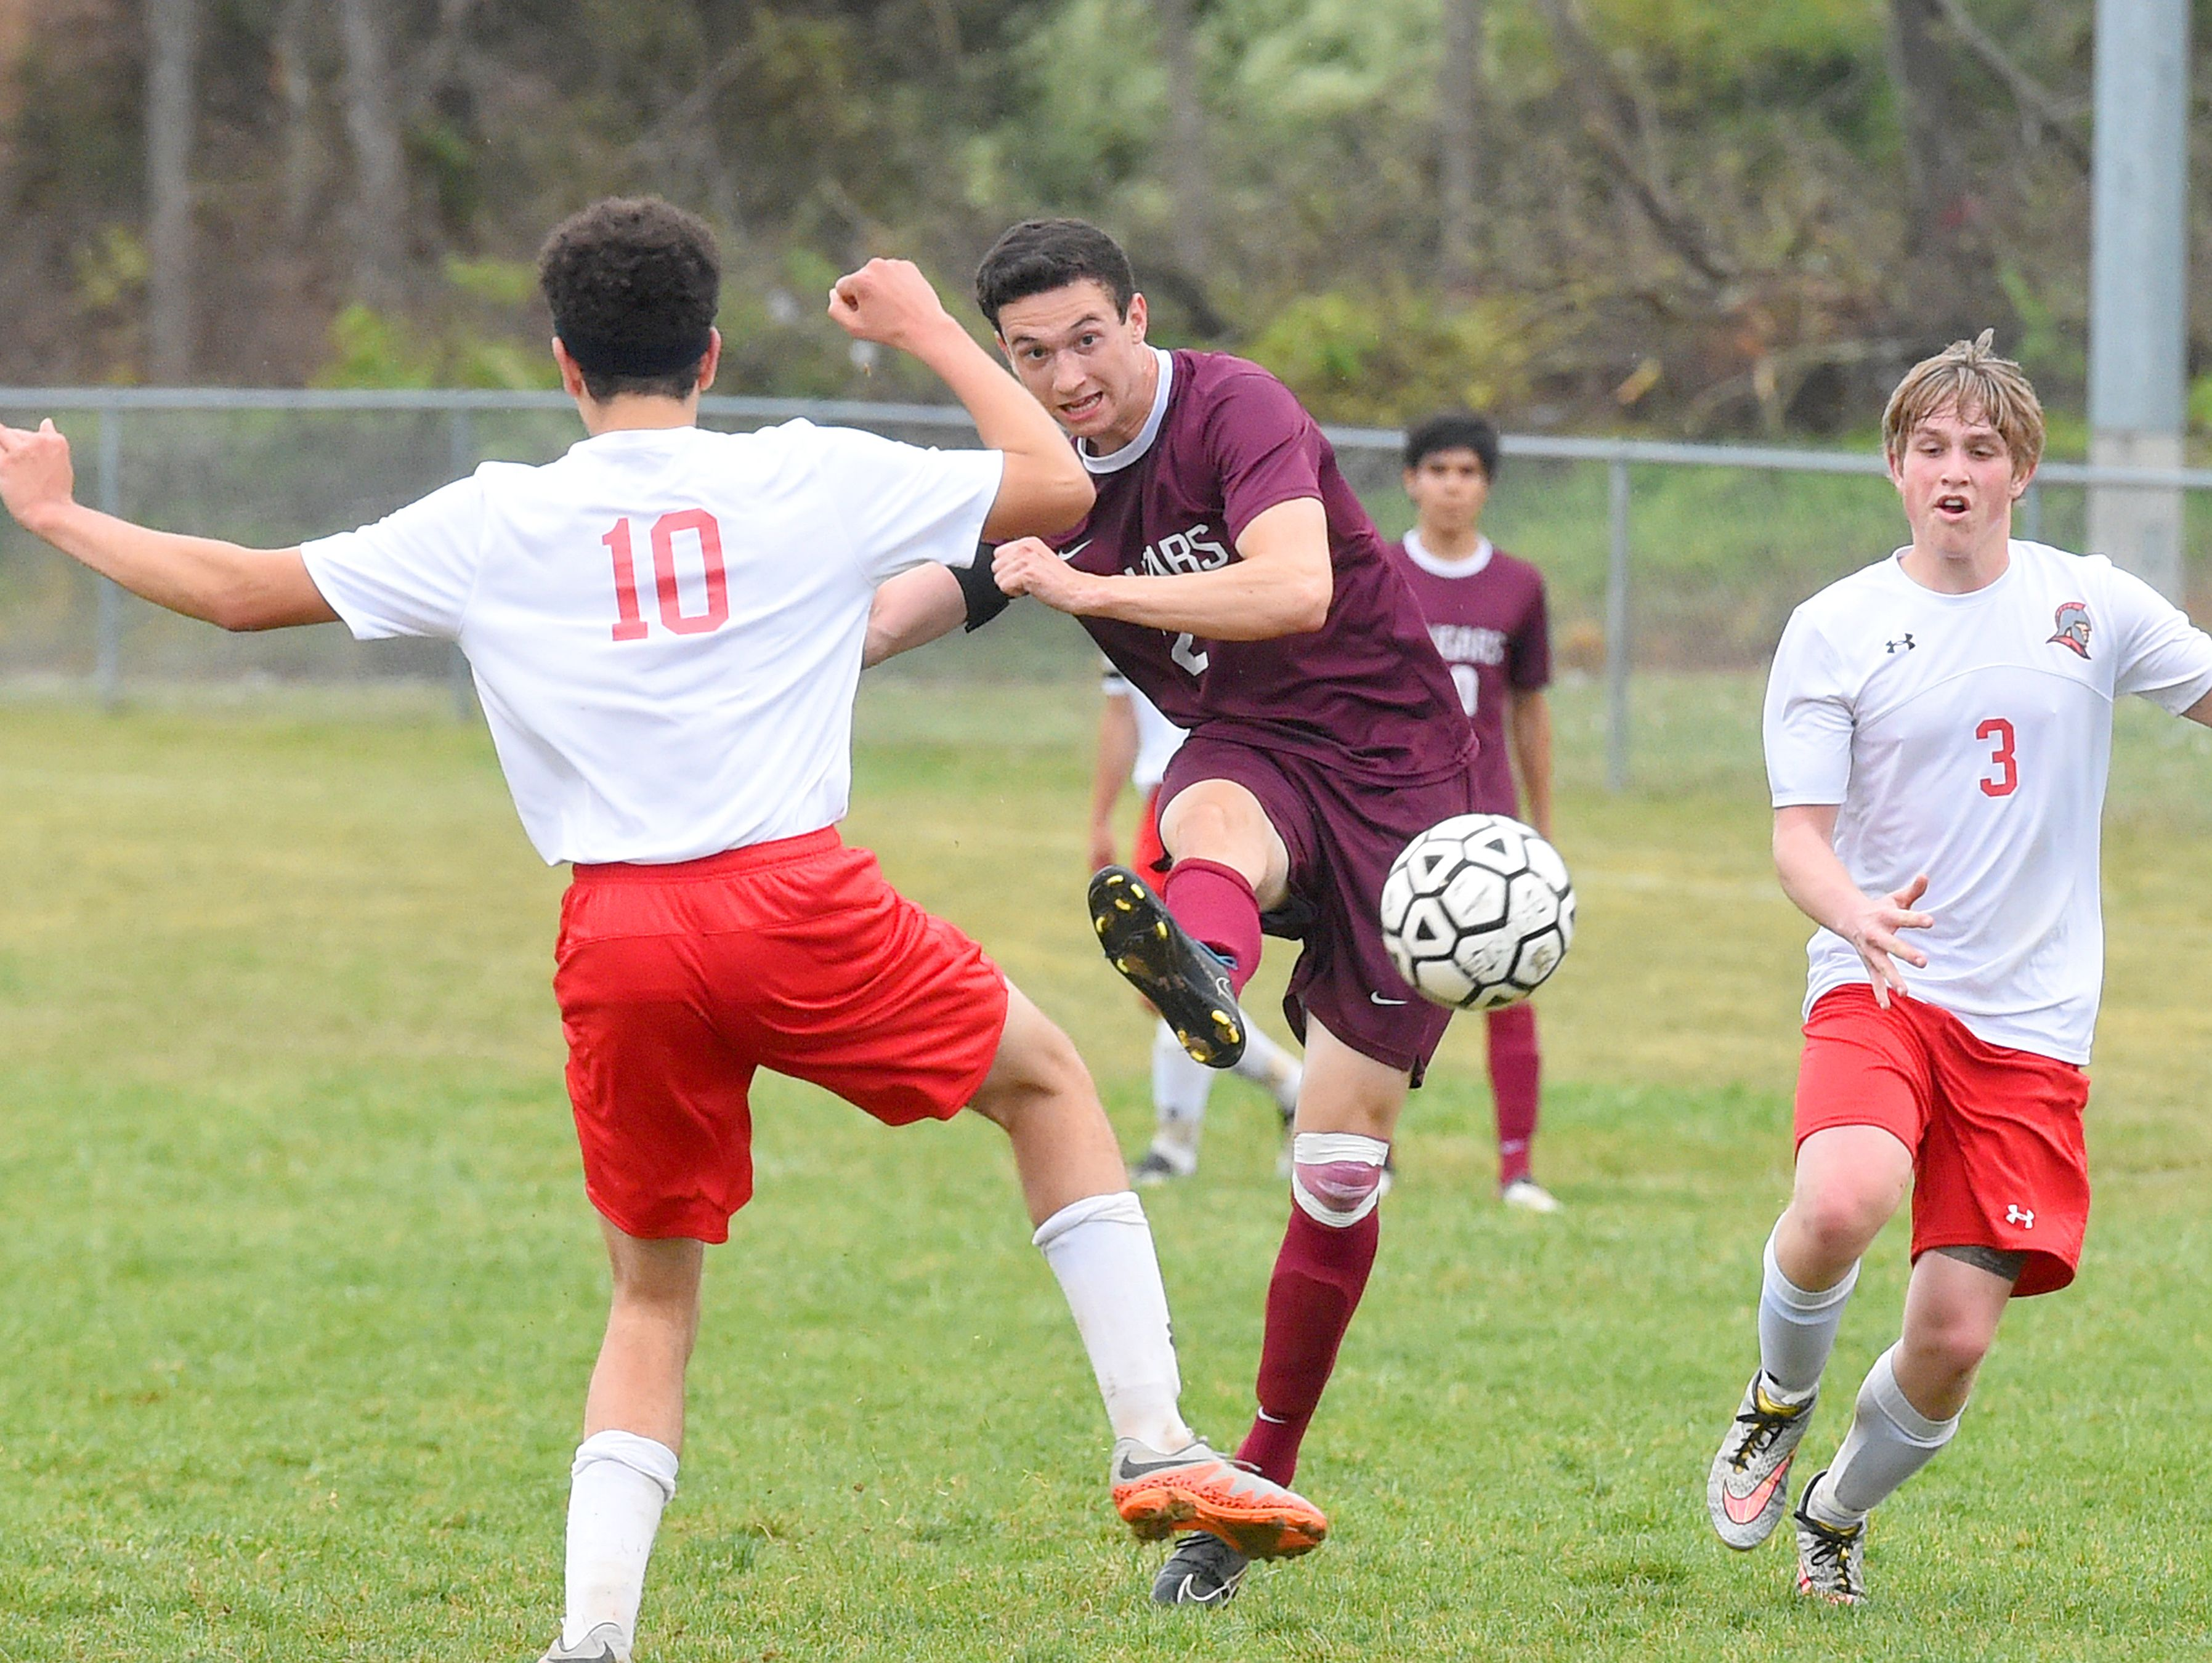 Stuarts Draft's Caleb Oakes kicks the ball as he faces off against Riverheads' DeyShon Hartley in front of him and William Elkins beside him during a soccer game played in Greenville on Friday, April 22, 2016.